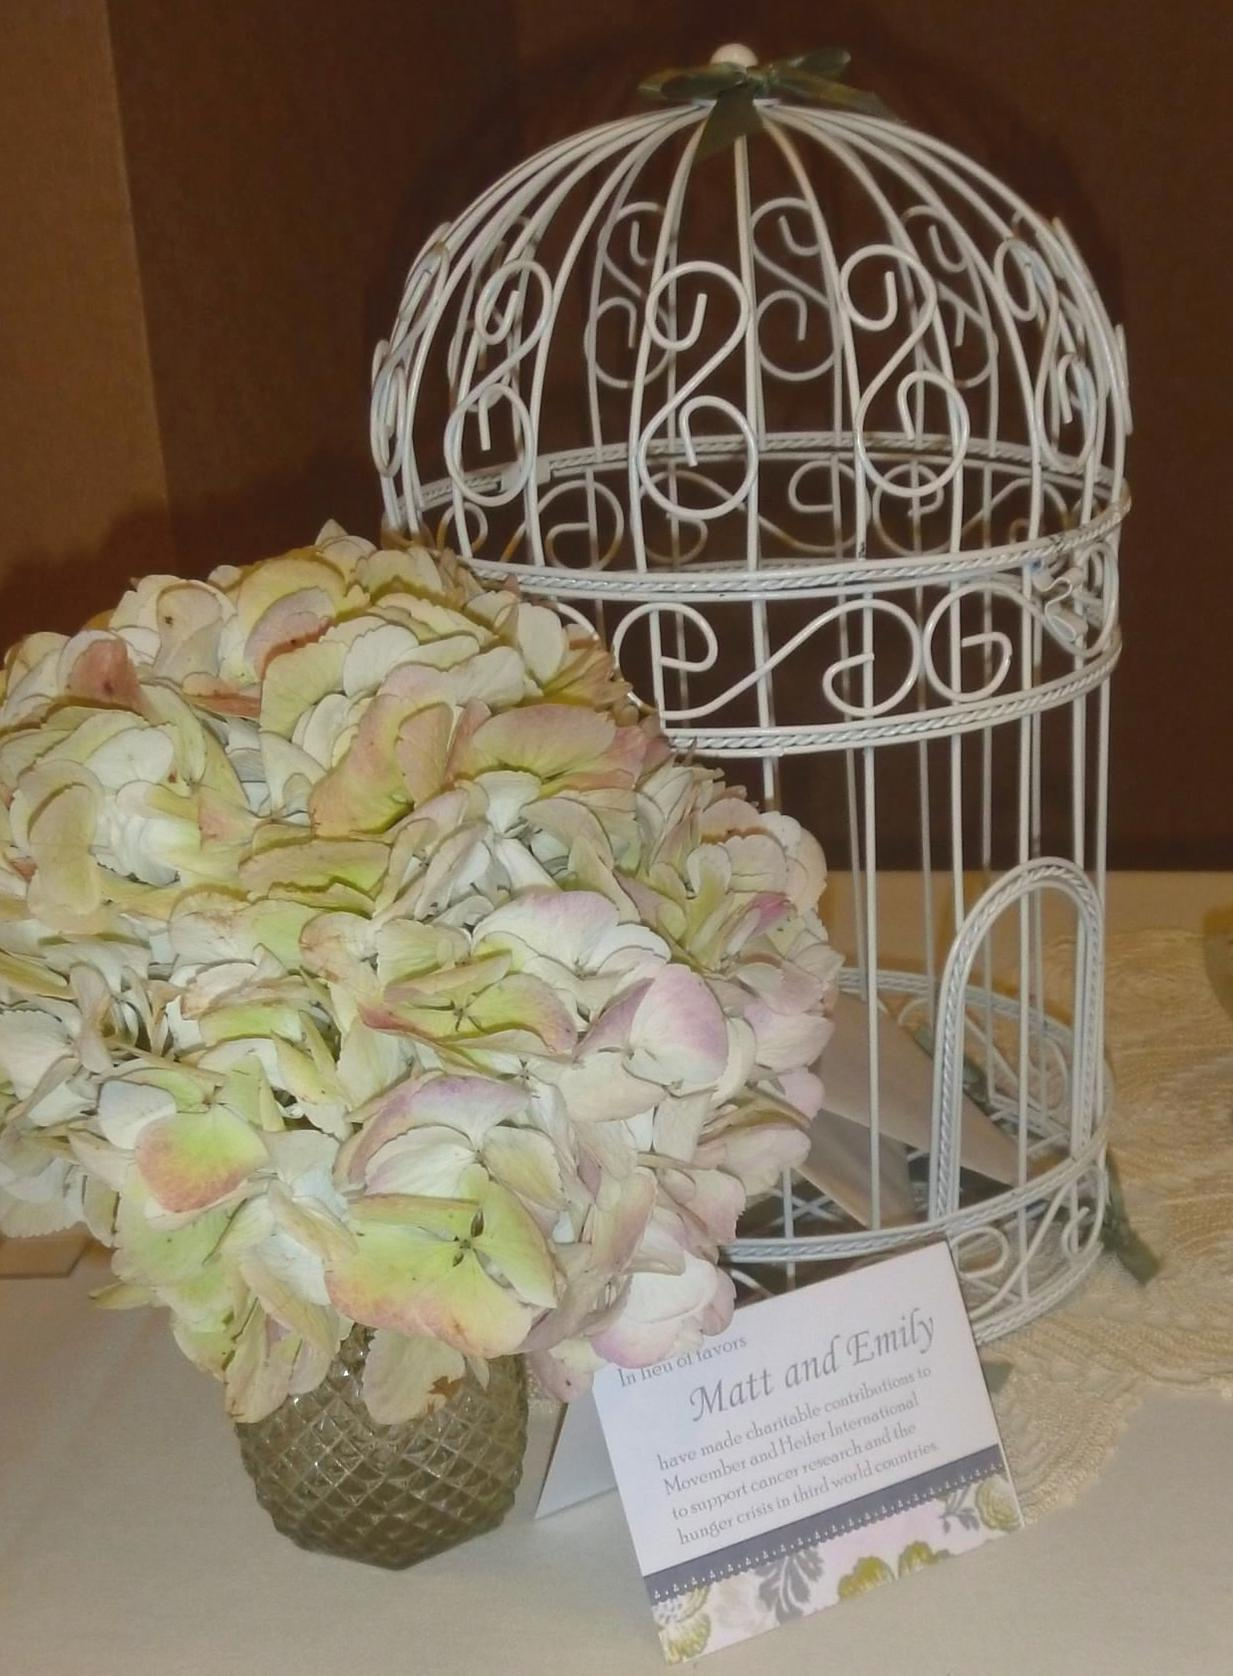 The Wedding March Bird Cage Card Holder